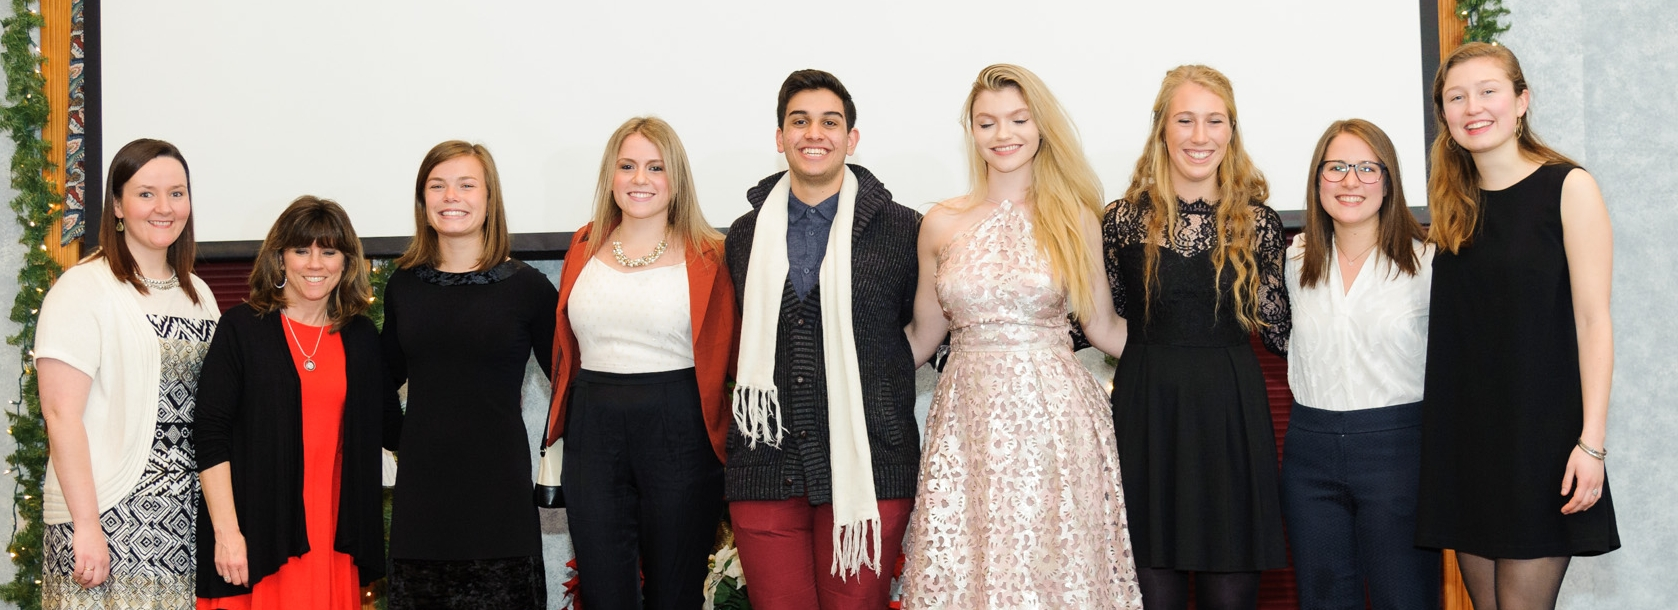 Outgoing Director Corinne Hermans, Barbara; 2017 Ambassadors Brita, Gianna, Karim, Jonni, and Lauren; Directors Ali and Sophie at the 2016 Social